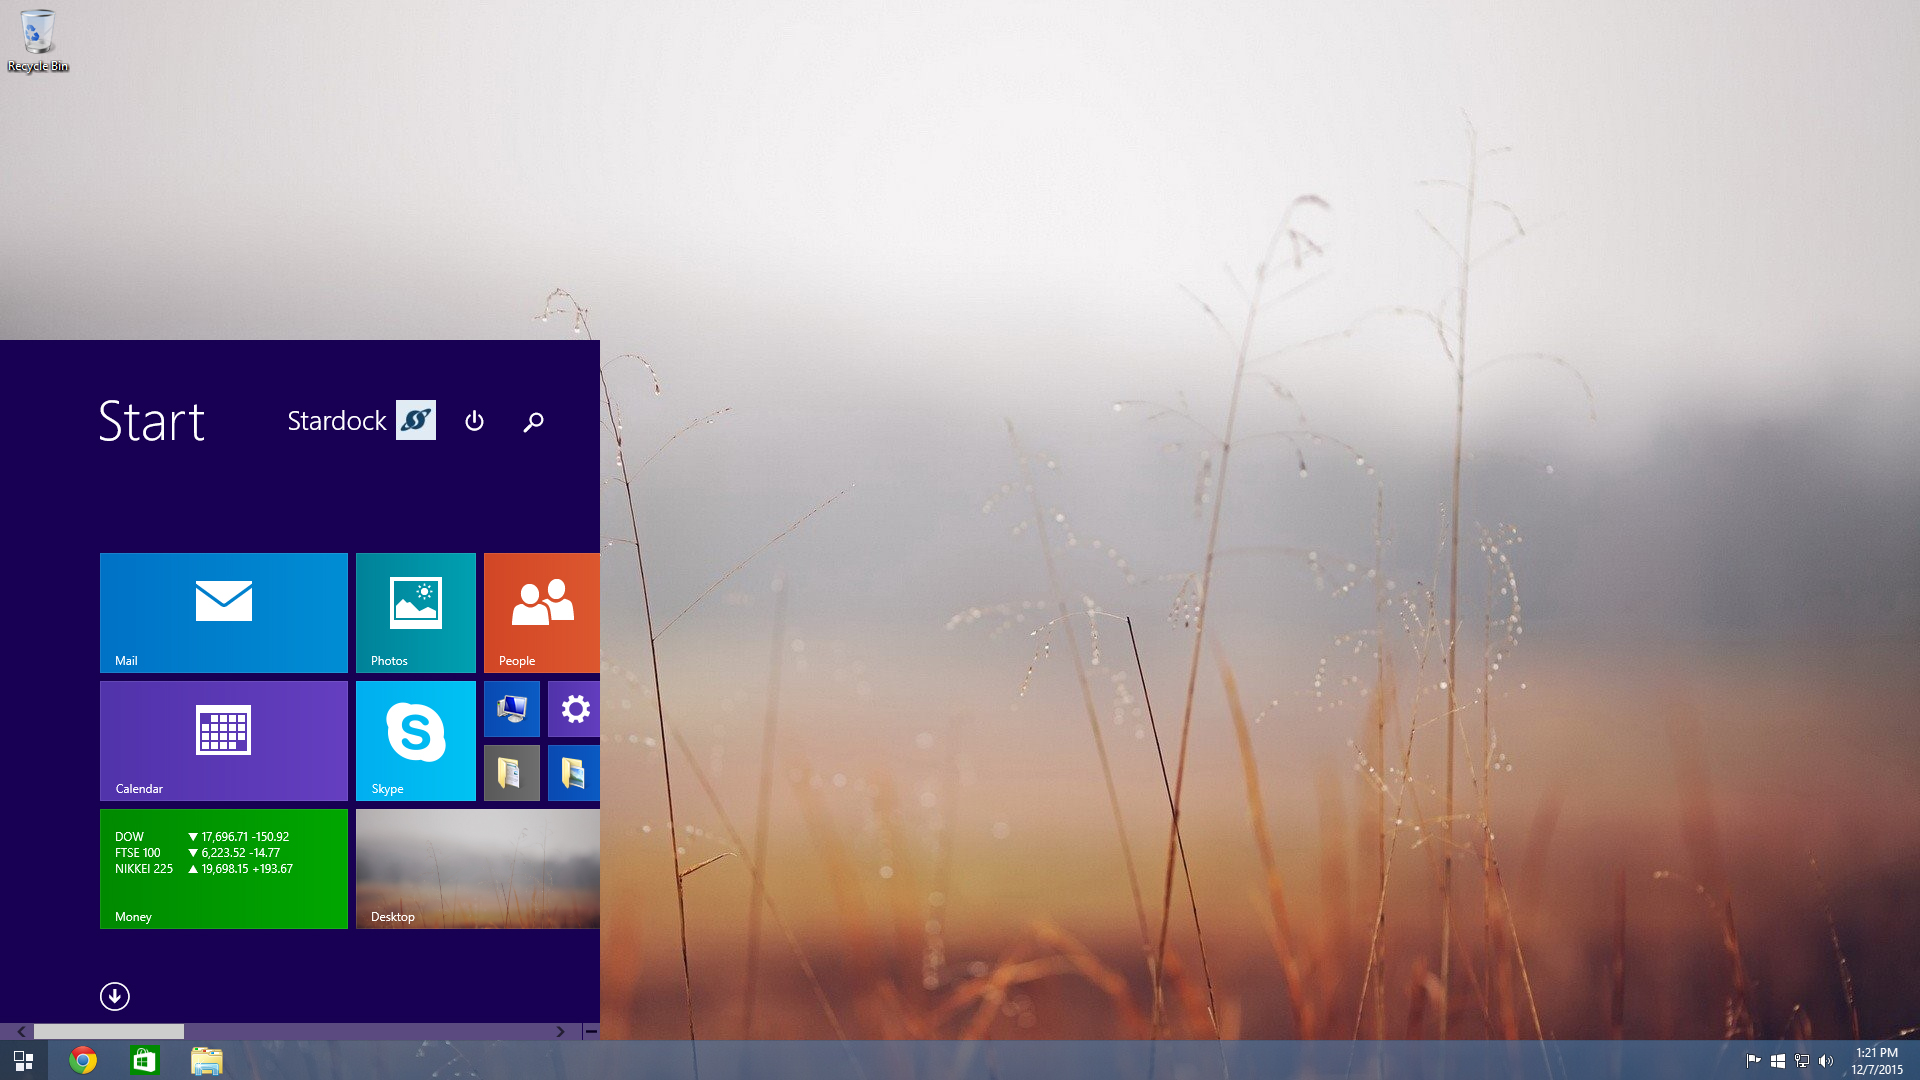 Stardock start8 v1.02 windows 8